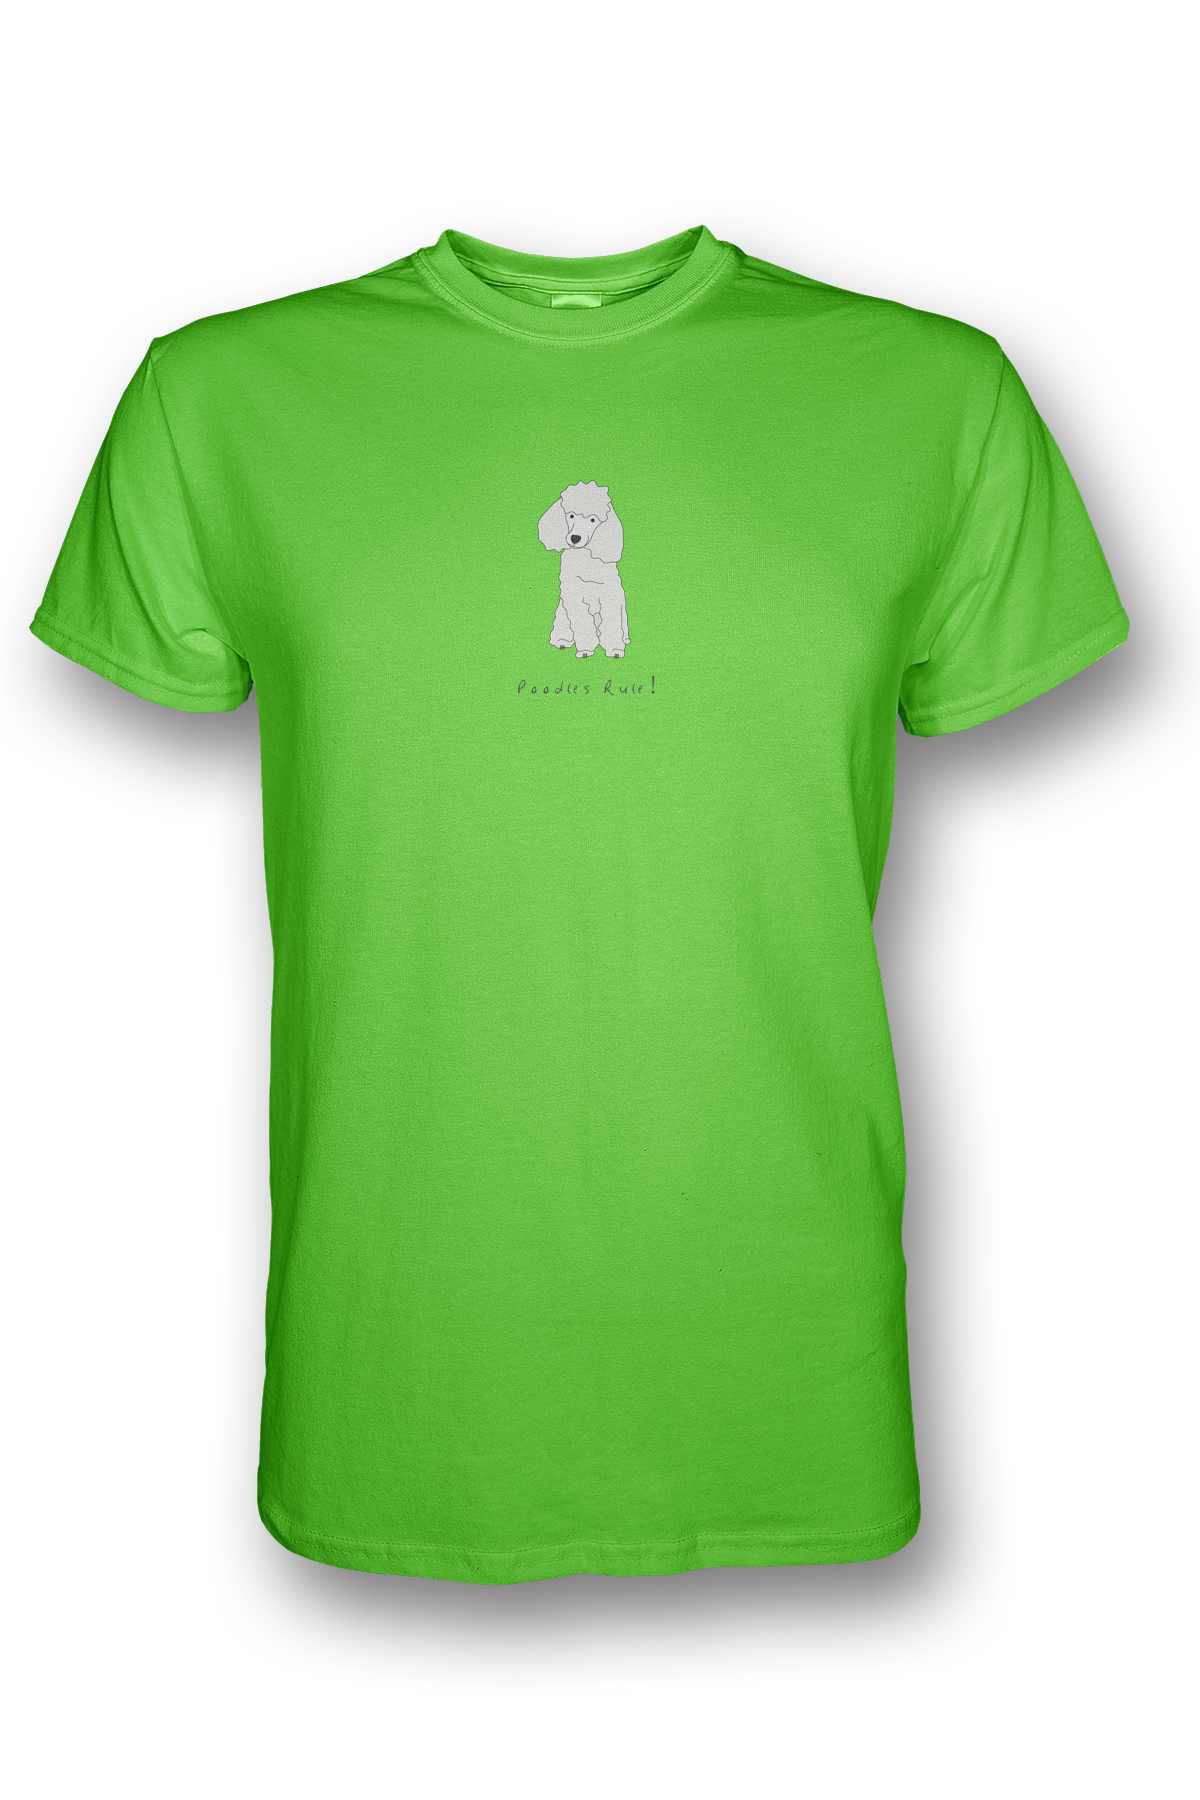 Mens Crew Neck T-Shirt - Poodles Rule! Neon Green